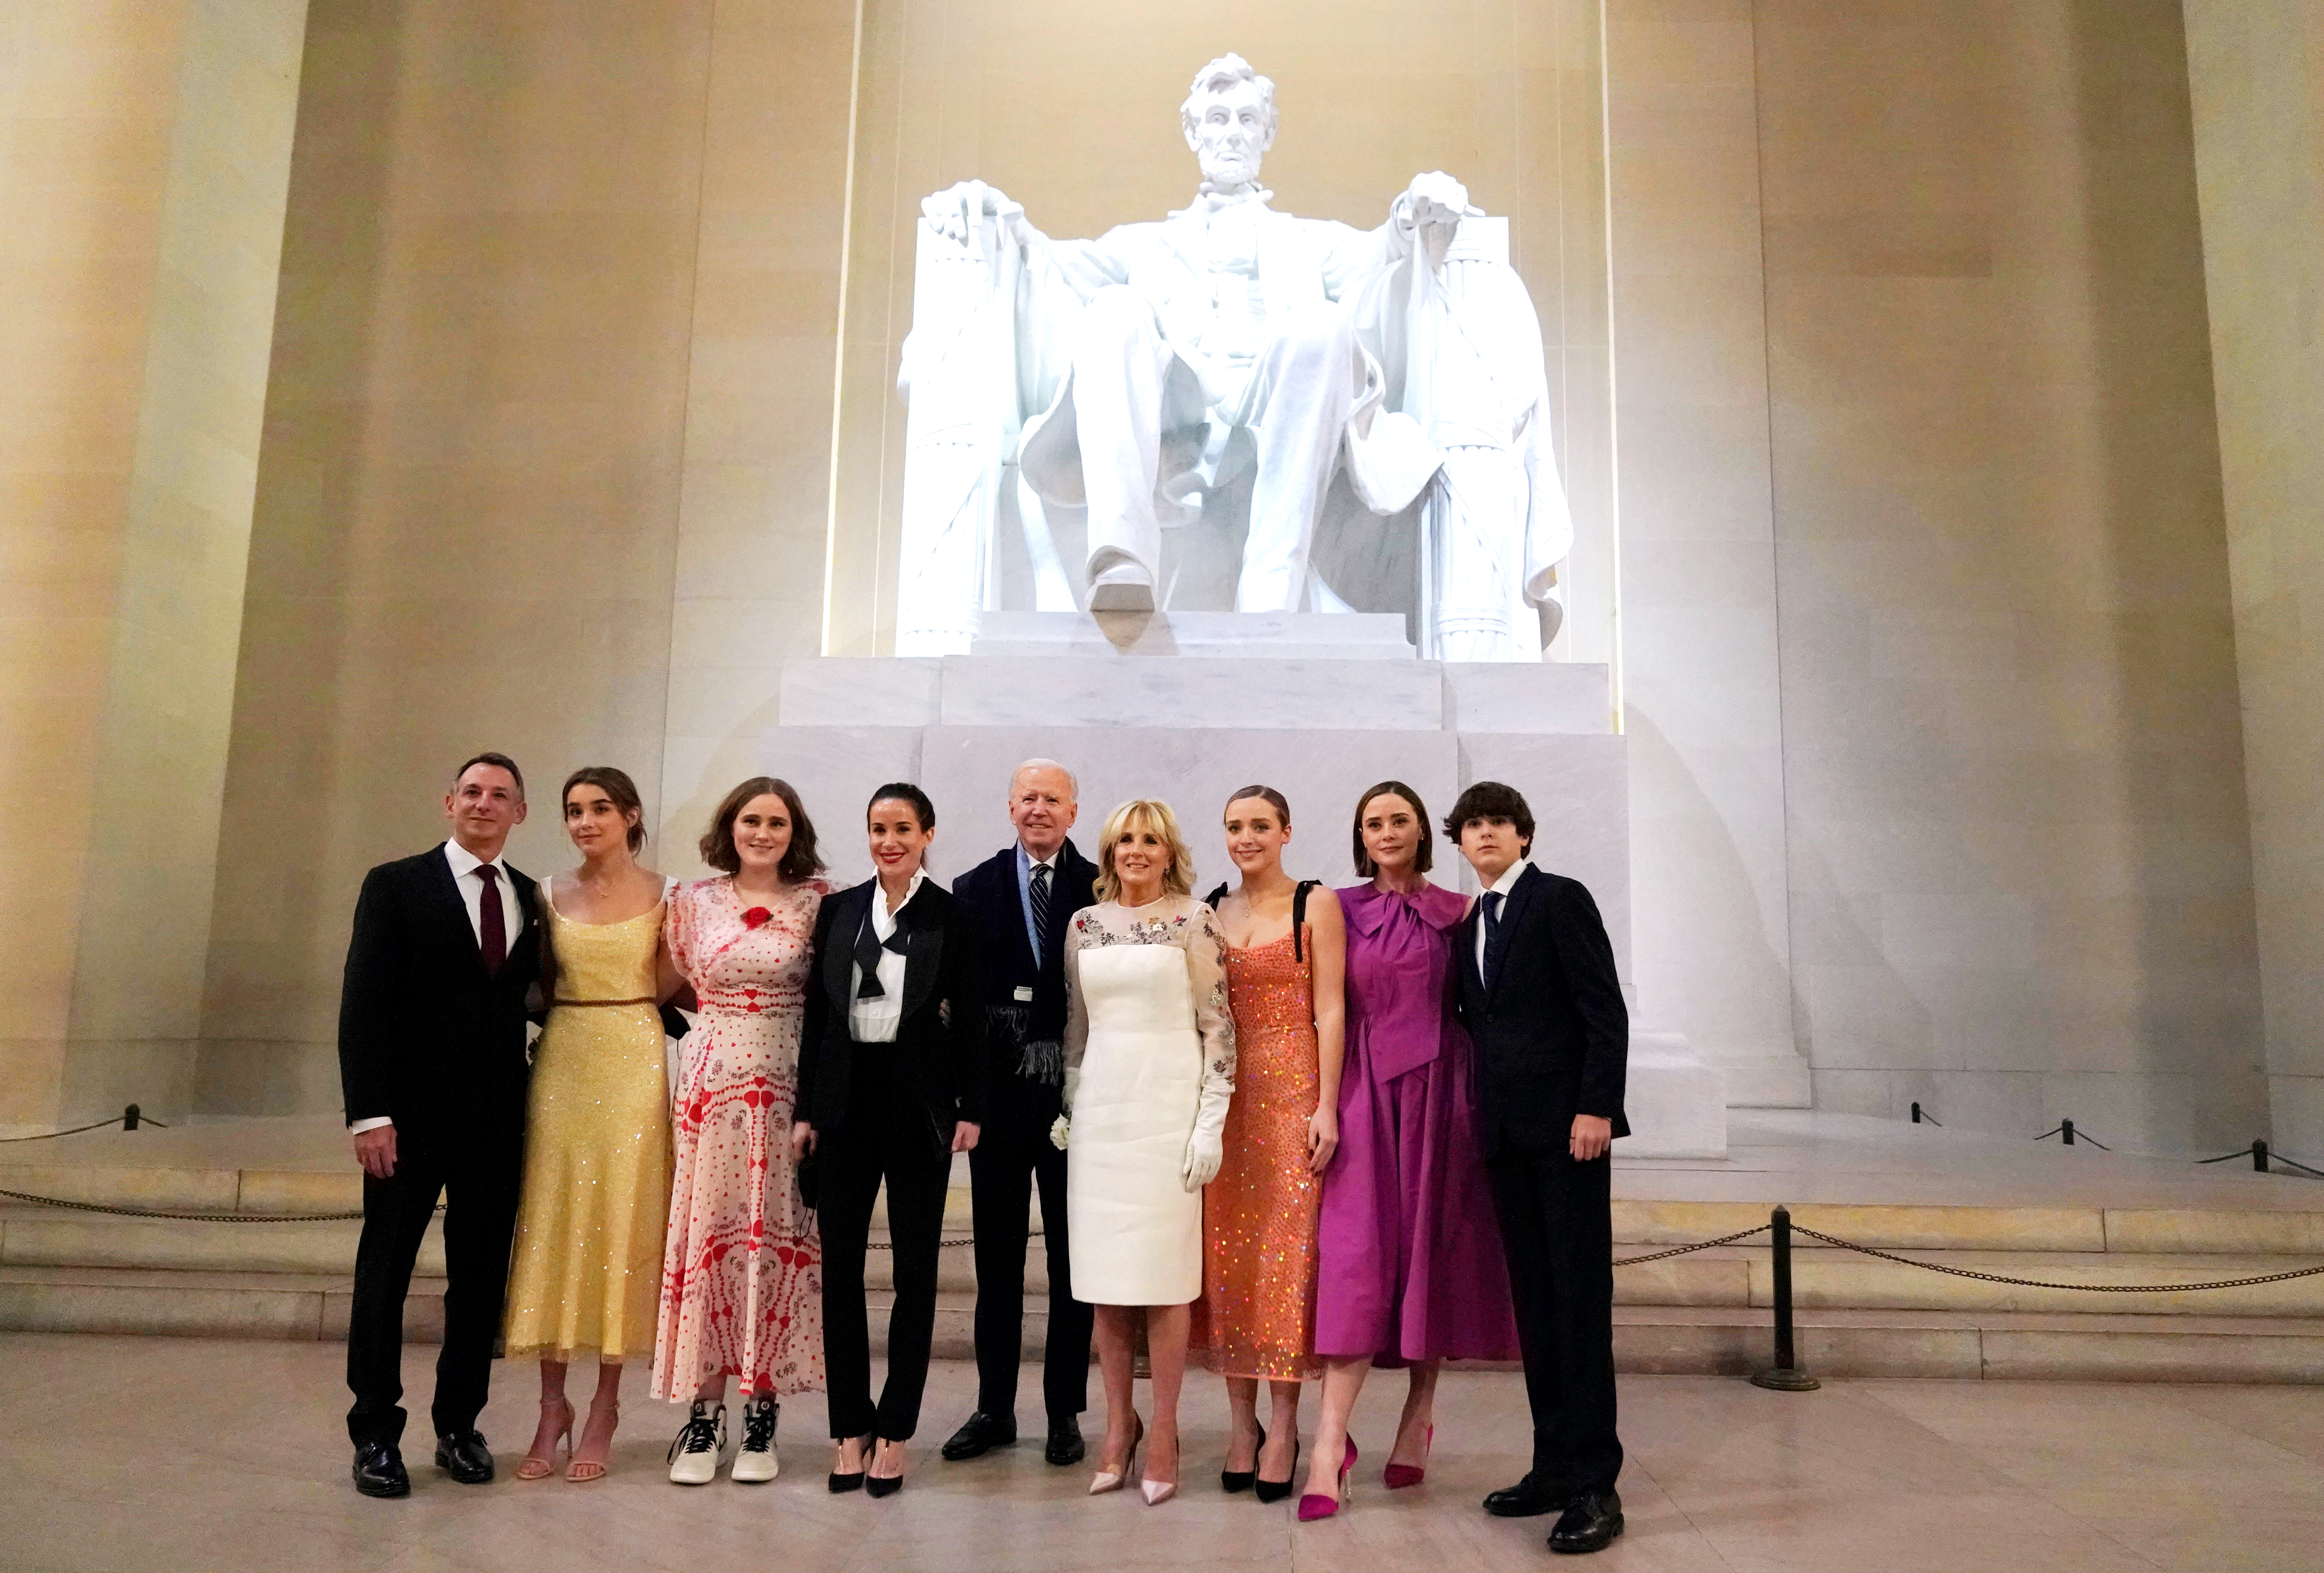 President Joe Biden and first lady Jill Biden pose for a photo with family members at the Celebrating America concert at the Lincoln Memorial in Washington, Wednesday, Jan. 20, 2021, after his inauguration.. (Joshua Roberts/Pool photo via AP)